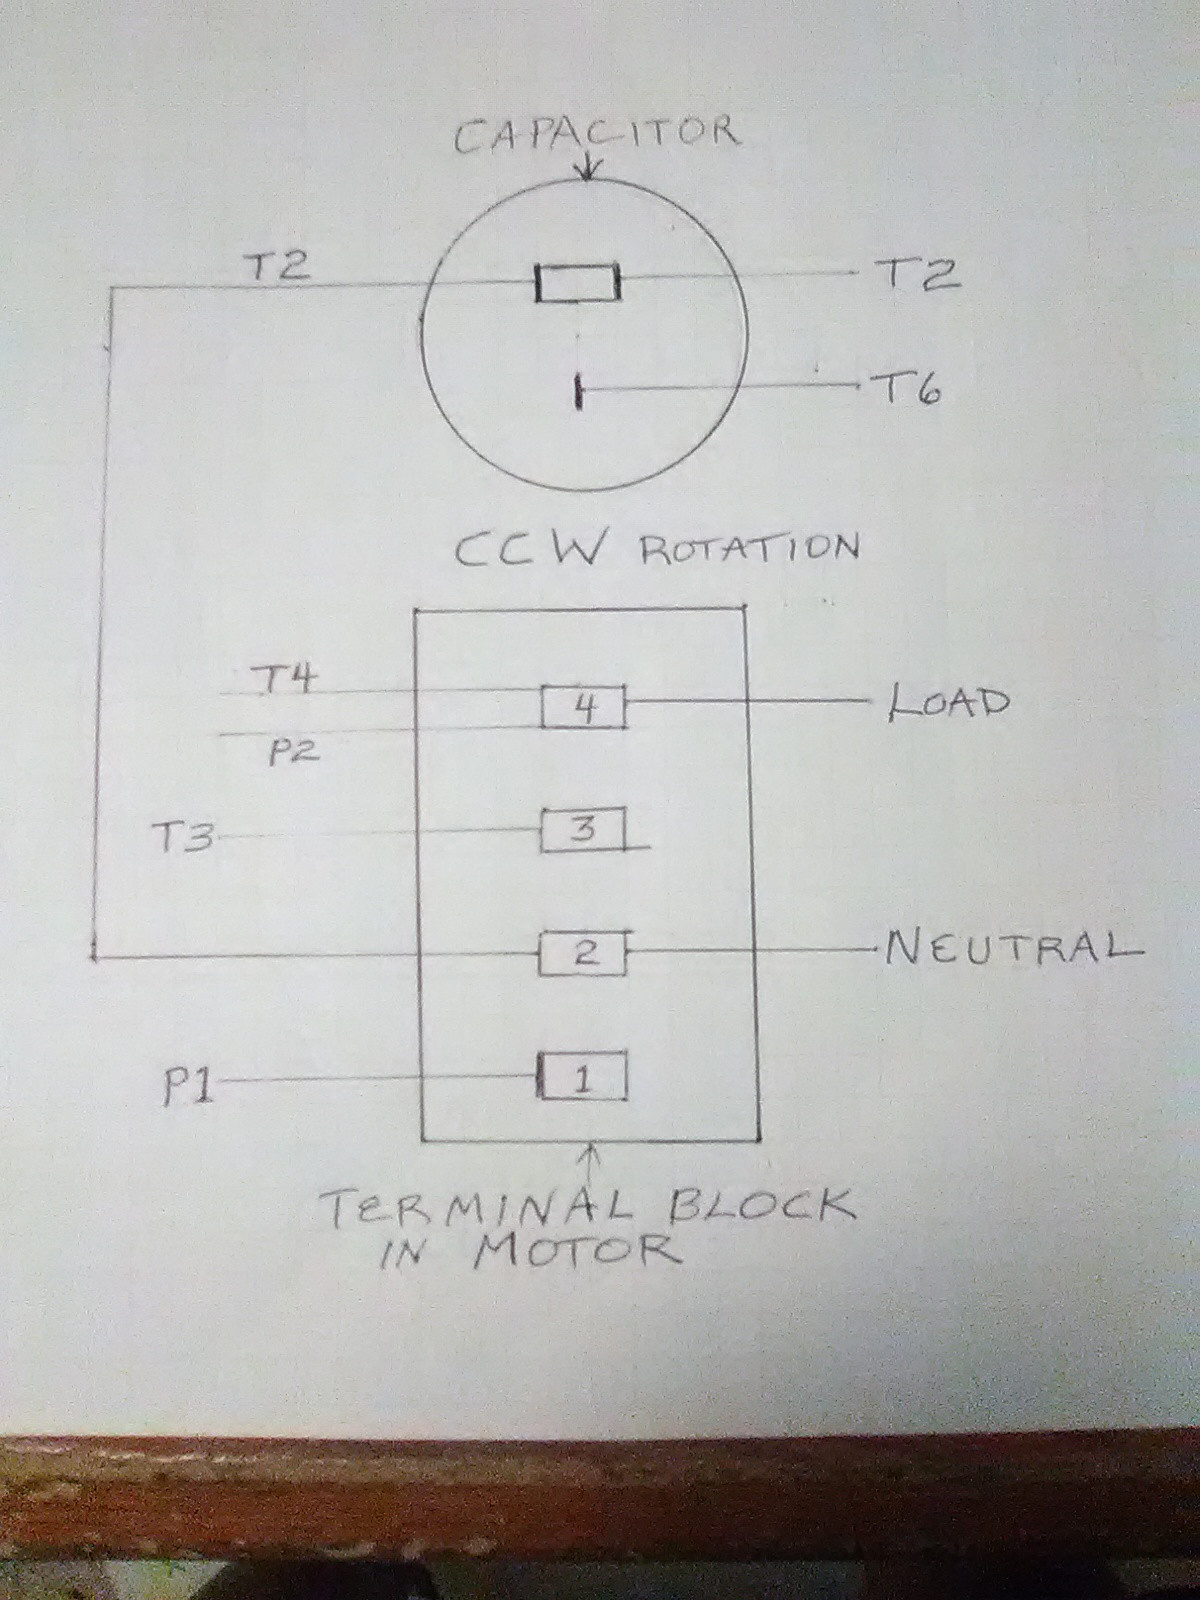 Capacitor Start Motor Wiring Diagram : capacitor, start, motor, wiring, diagram, Wiring, Electric, Motor, Without, Plate, Diagram, Information,, Other, Running, Electrical, Engineering, Stack, Exchange